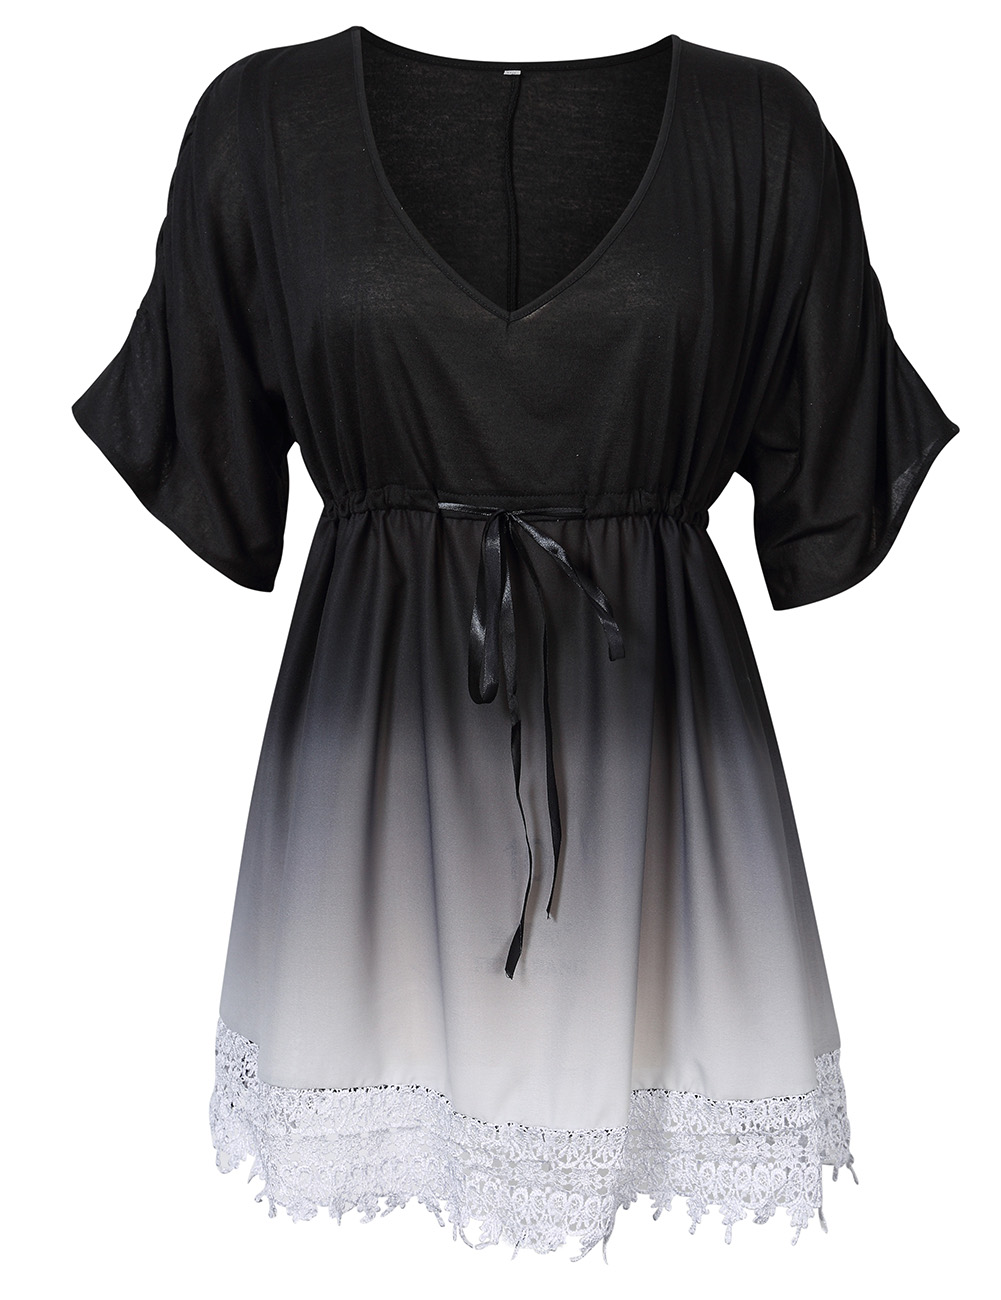 [EU Direct] AMZ PLUS Women Plus Size Casual V-neck Contrast Lace Trim Summer Dress